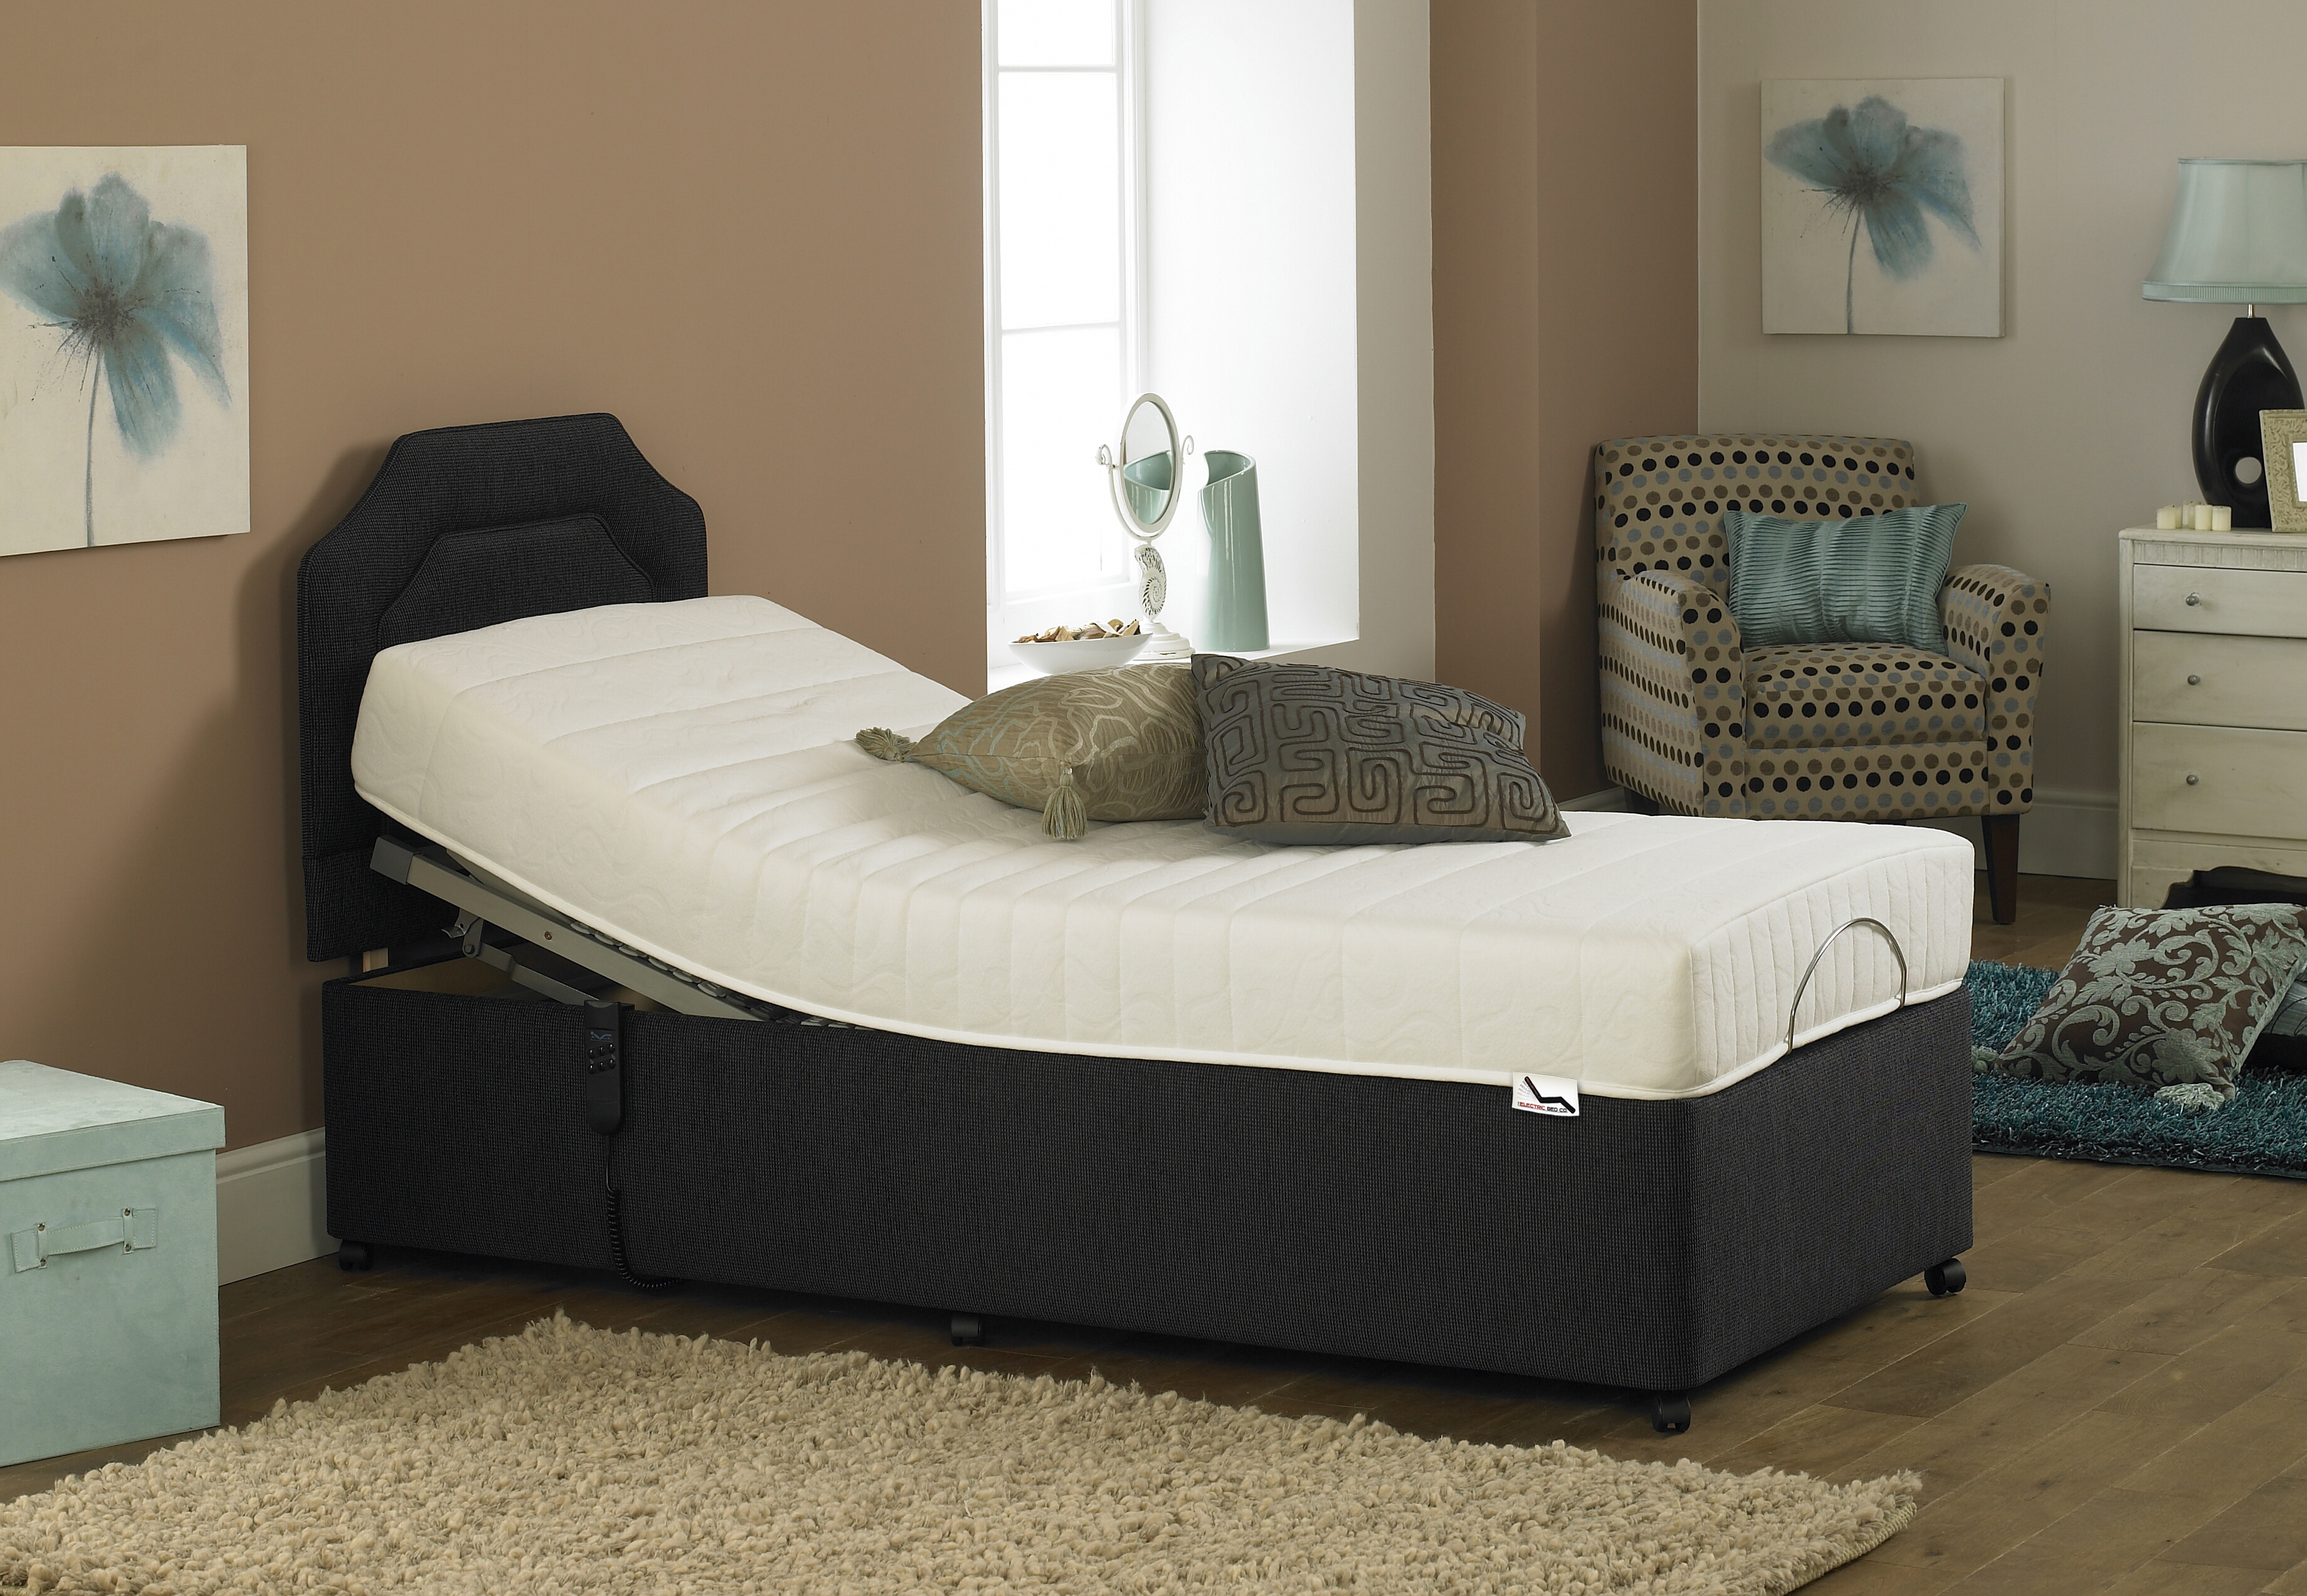 Electric Adjustable Bed with Black Base Colour